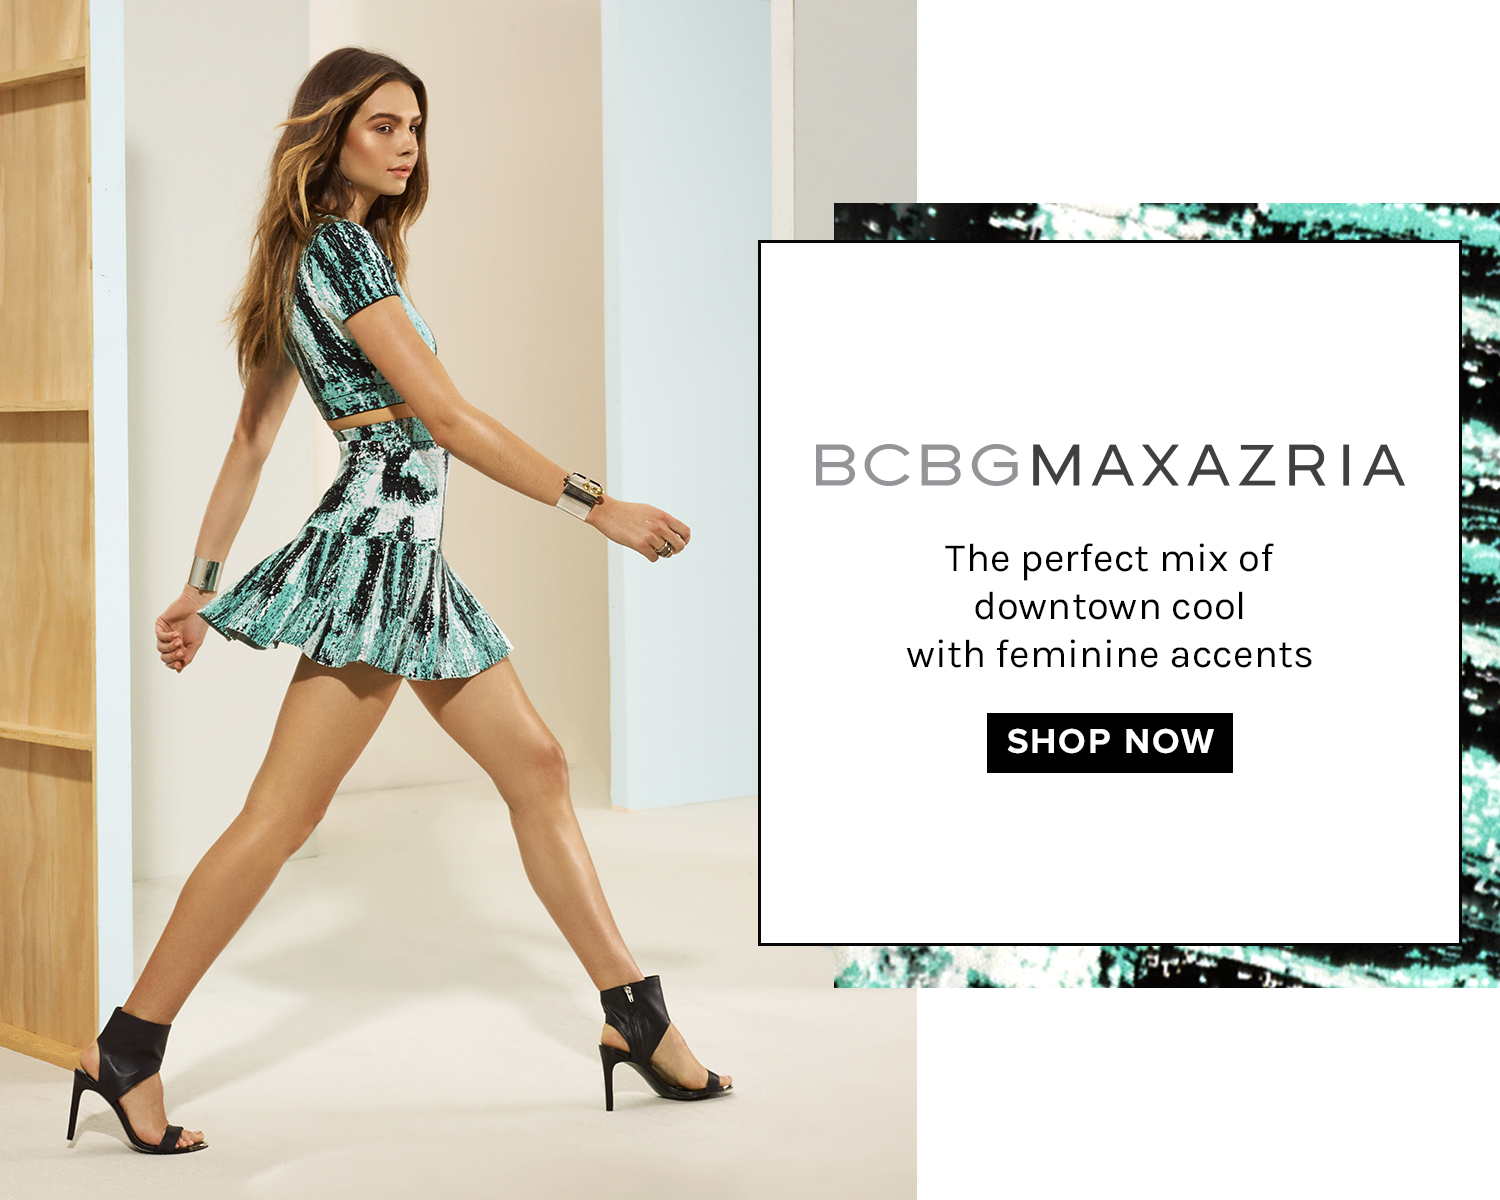 BCBG. The perfect mix of downtown cool with feminine accents.